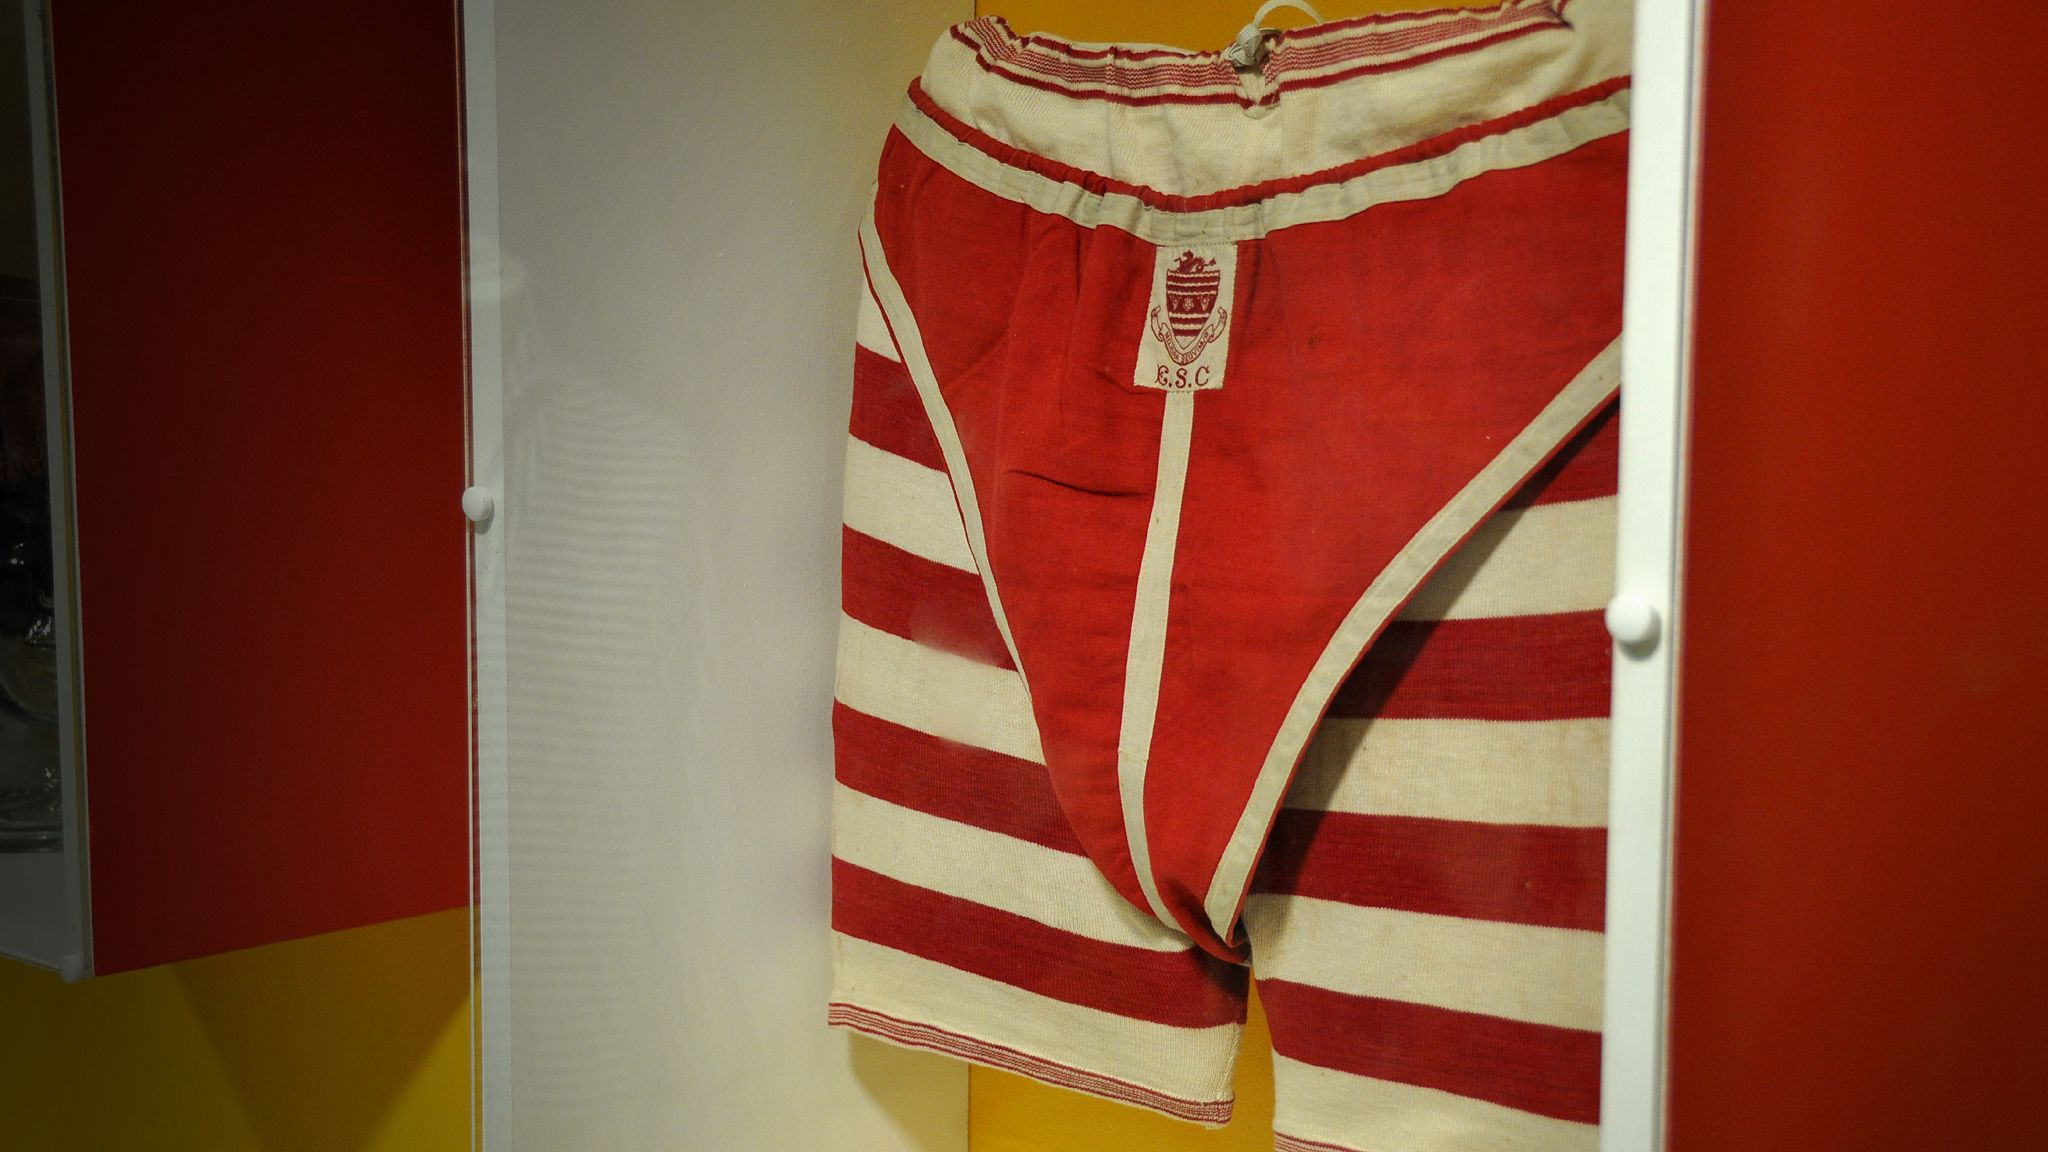 Men's bathing shorts and matching 'athletes' over the top, 1880-1900